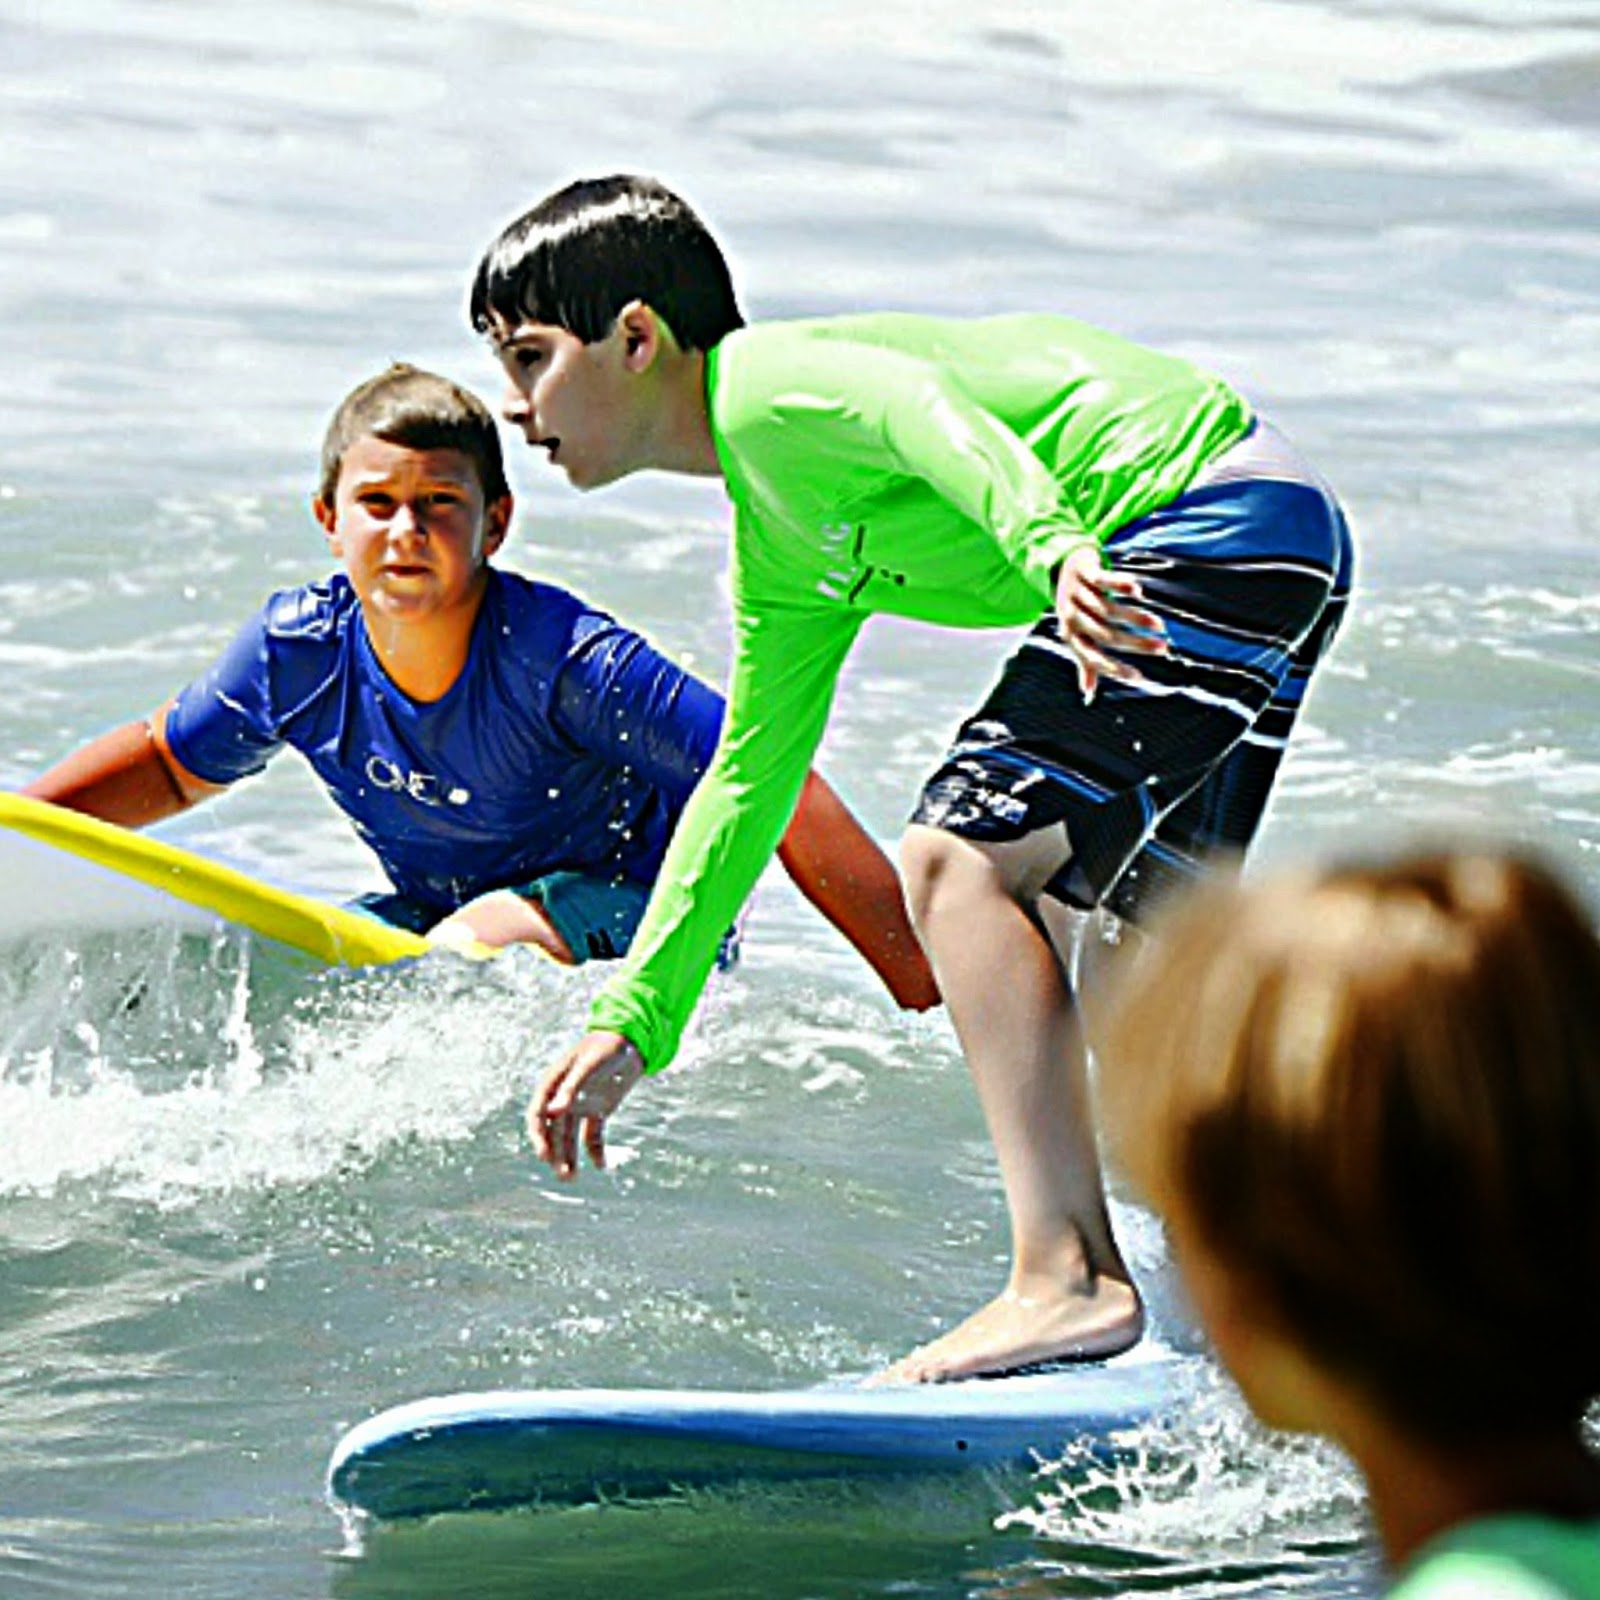 11 year old boy camper at Aloha Beach Camp Summer Camp surfs the waves on his blue surfboard while other campers watch.